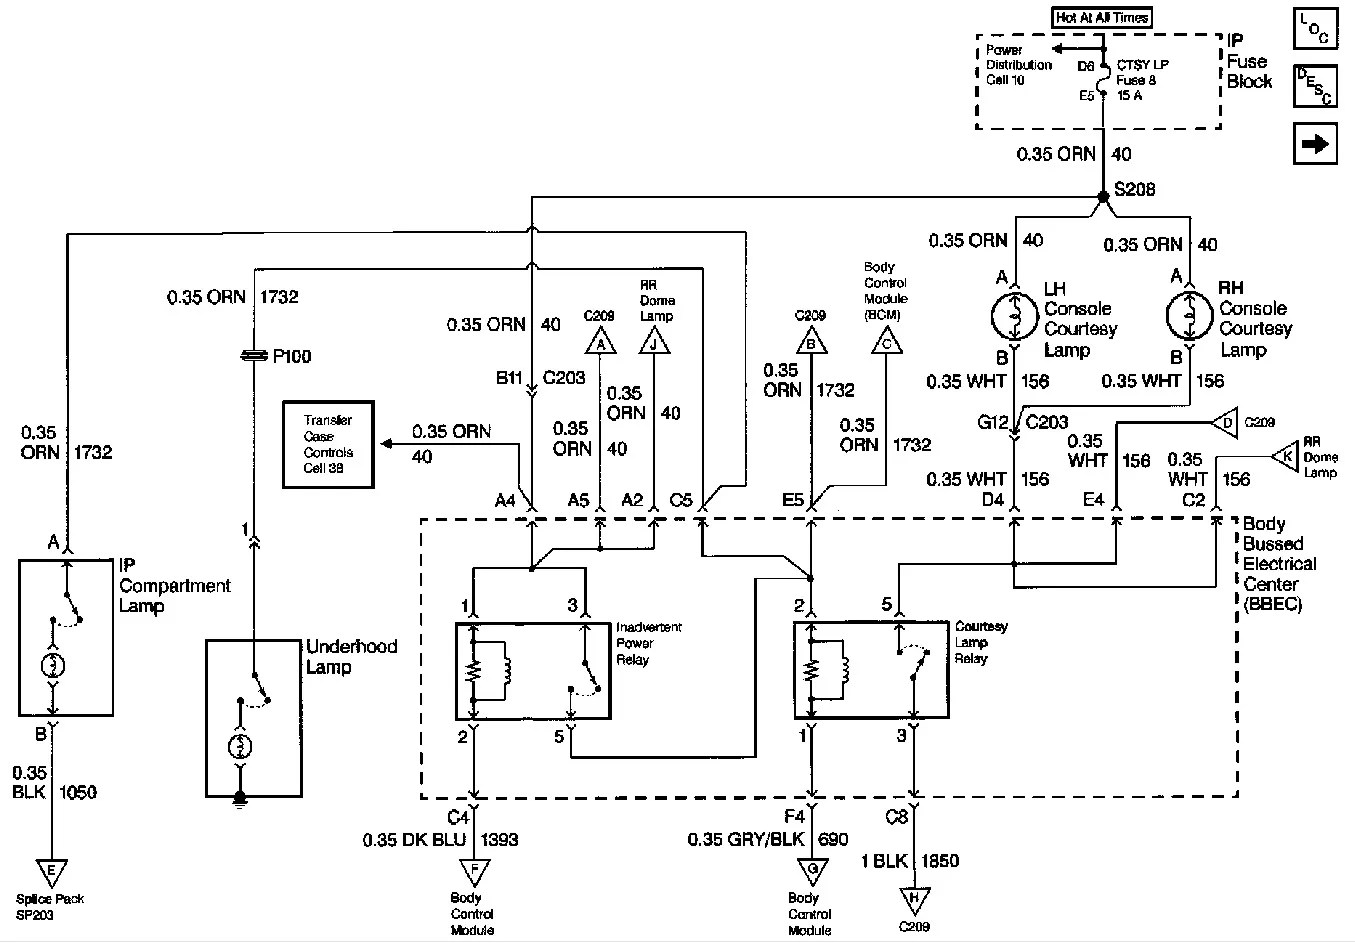 neutral safety switch wiring diagram 96 chevy tahoe ford f150 blazer 4x4 get free image about